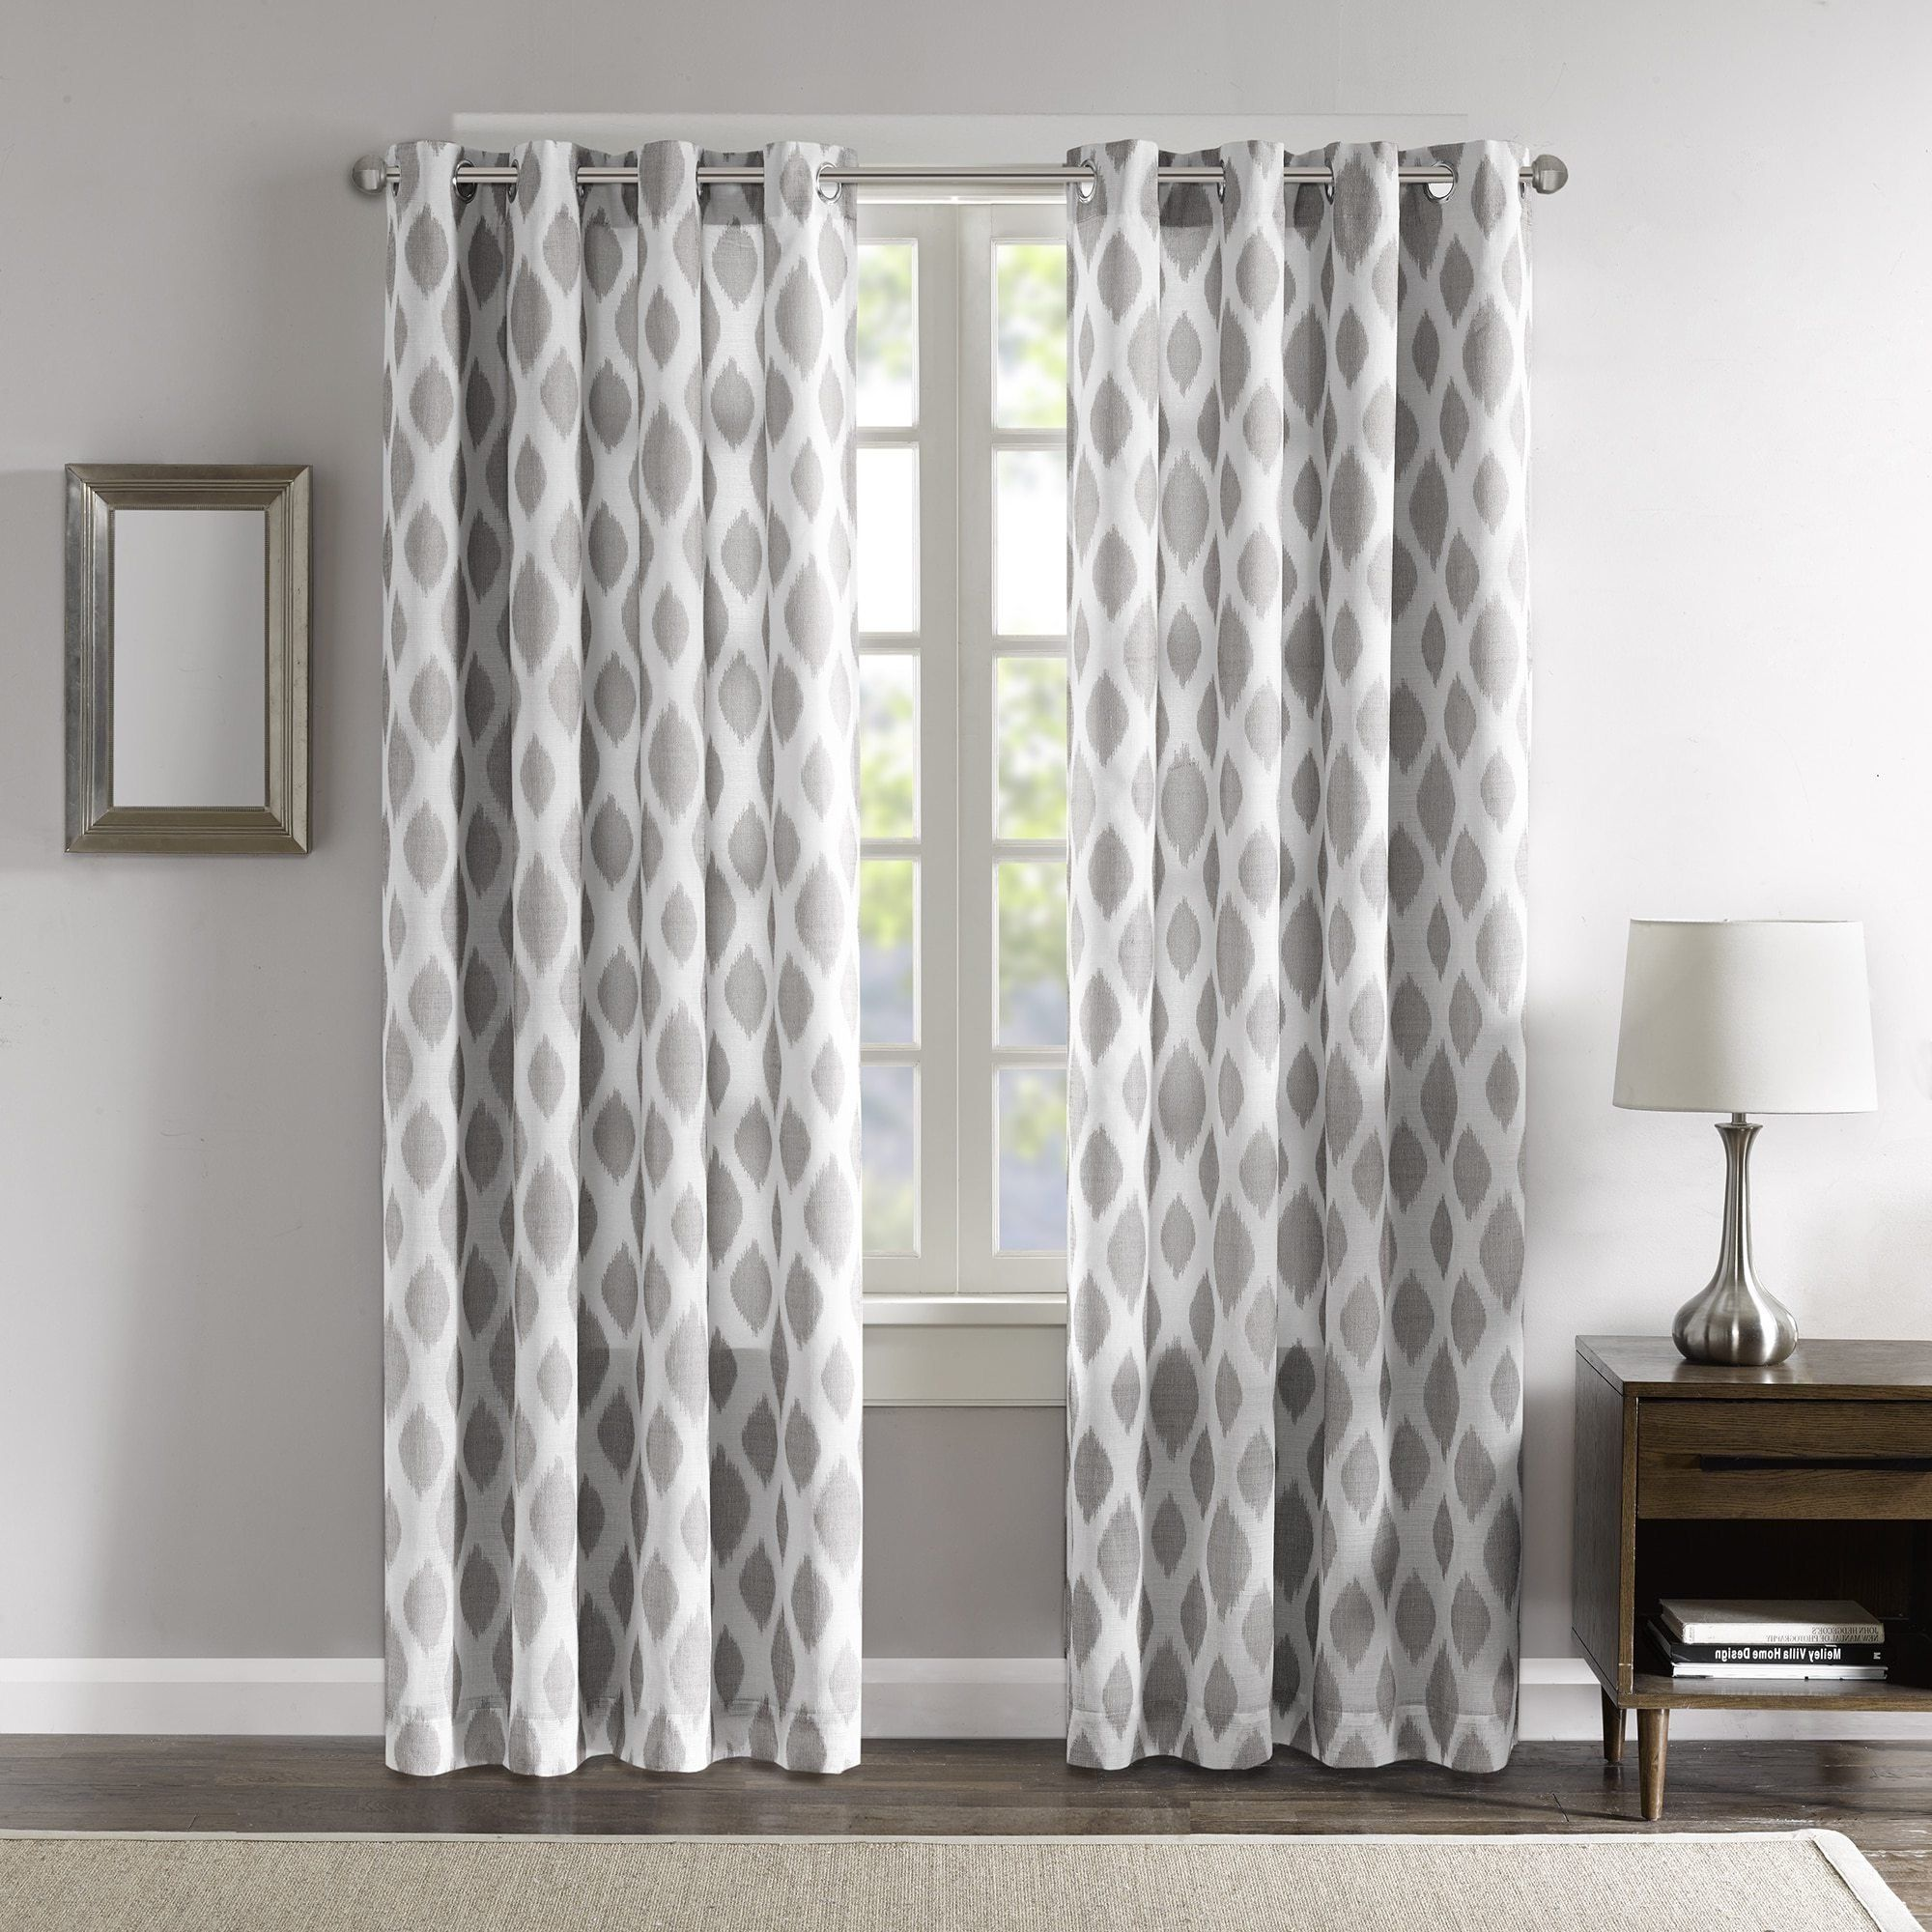 Dh 1 Piece 84 Inch Silver Grey White Ikat Curtain Panel Light Grey Color Drapes Jacquard Pattern Window Treat Panel Curtains Ikat Curtains Curtains Living Room